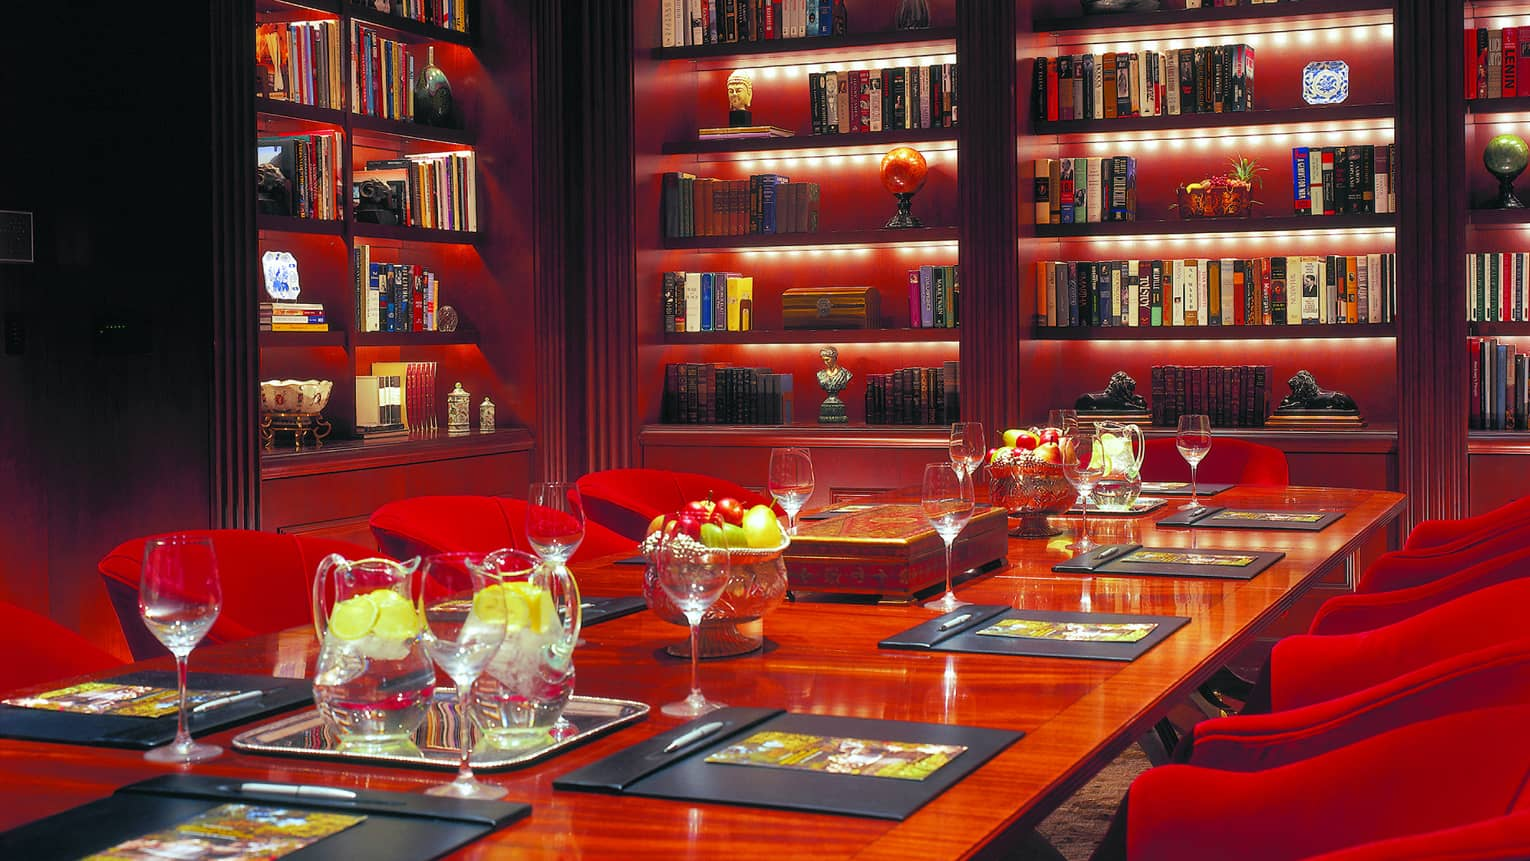 Sophisticated and intimate library with books on shelves, table with jugs of water, red lounge chairs